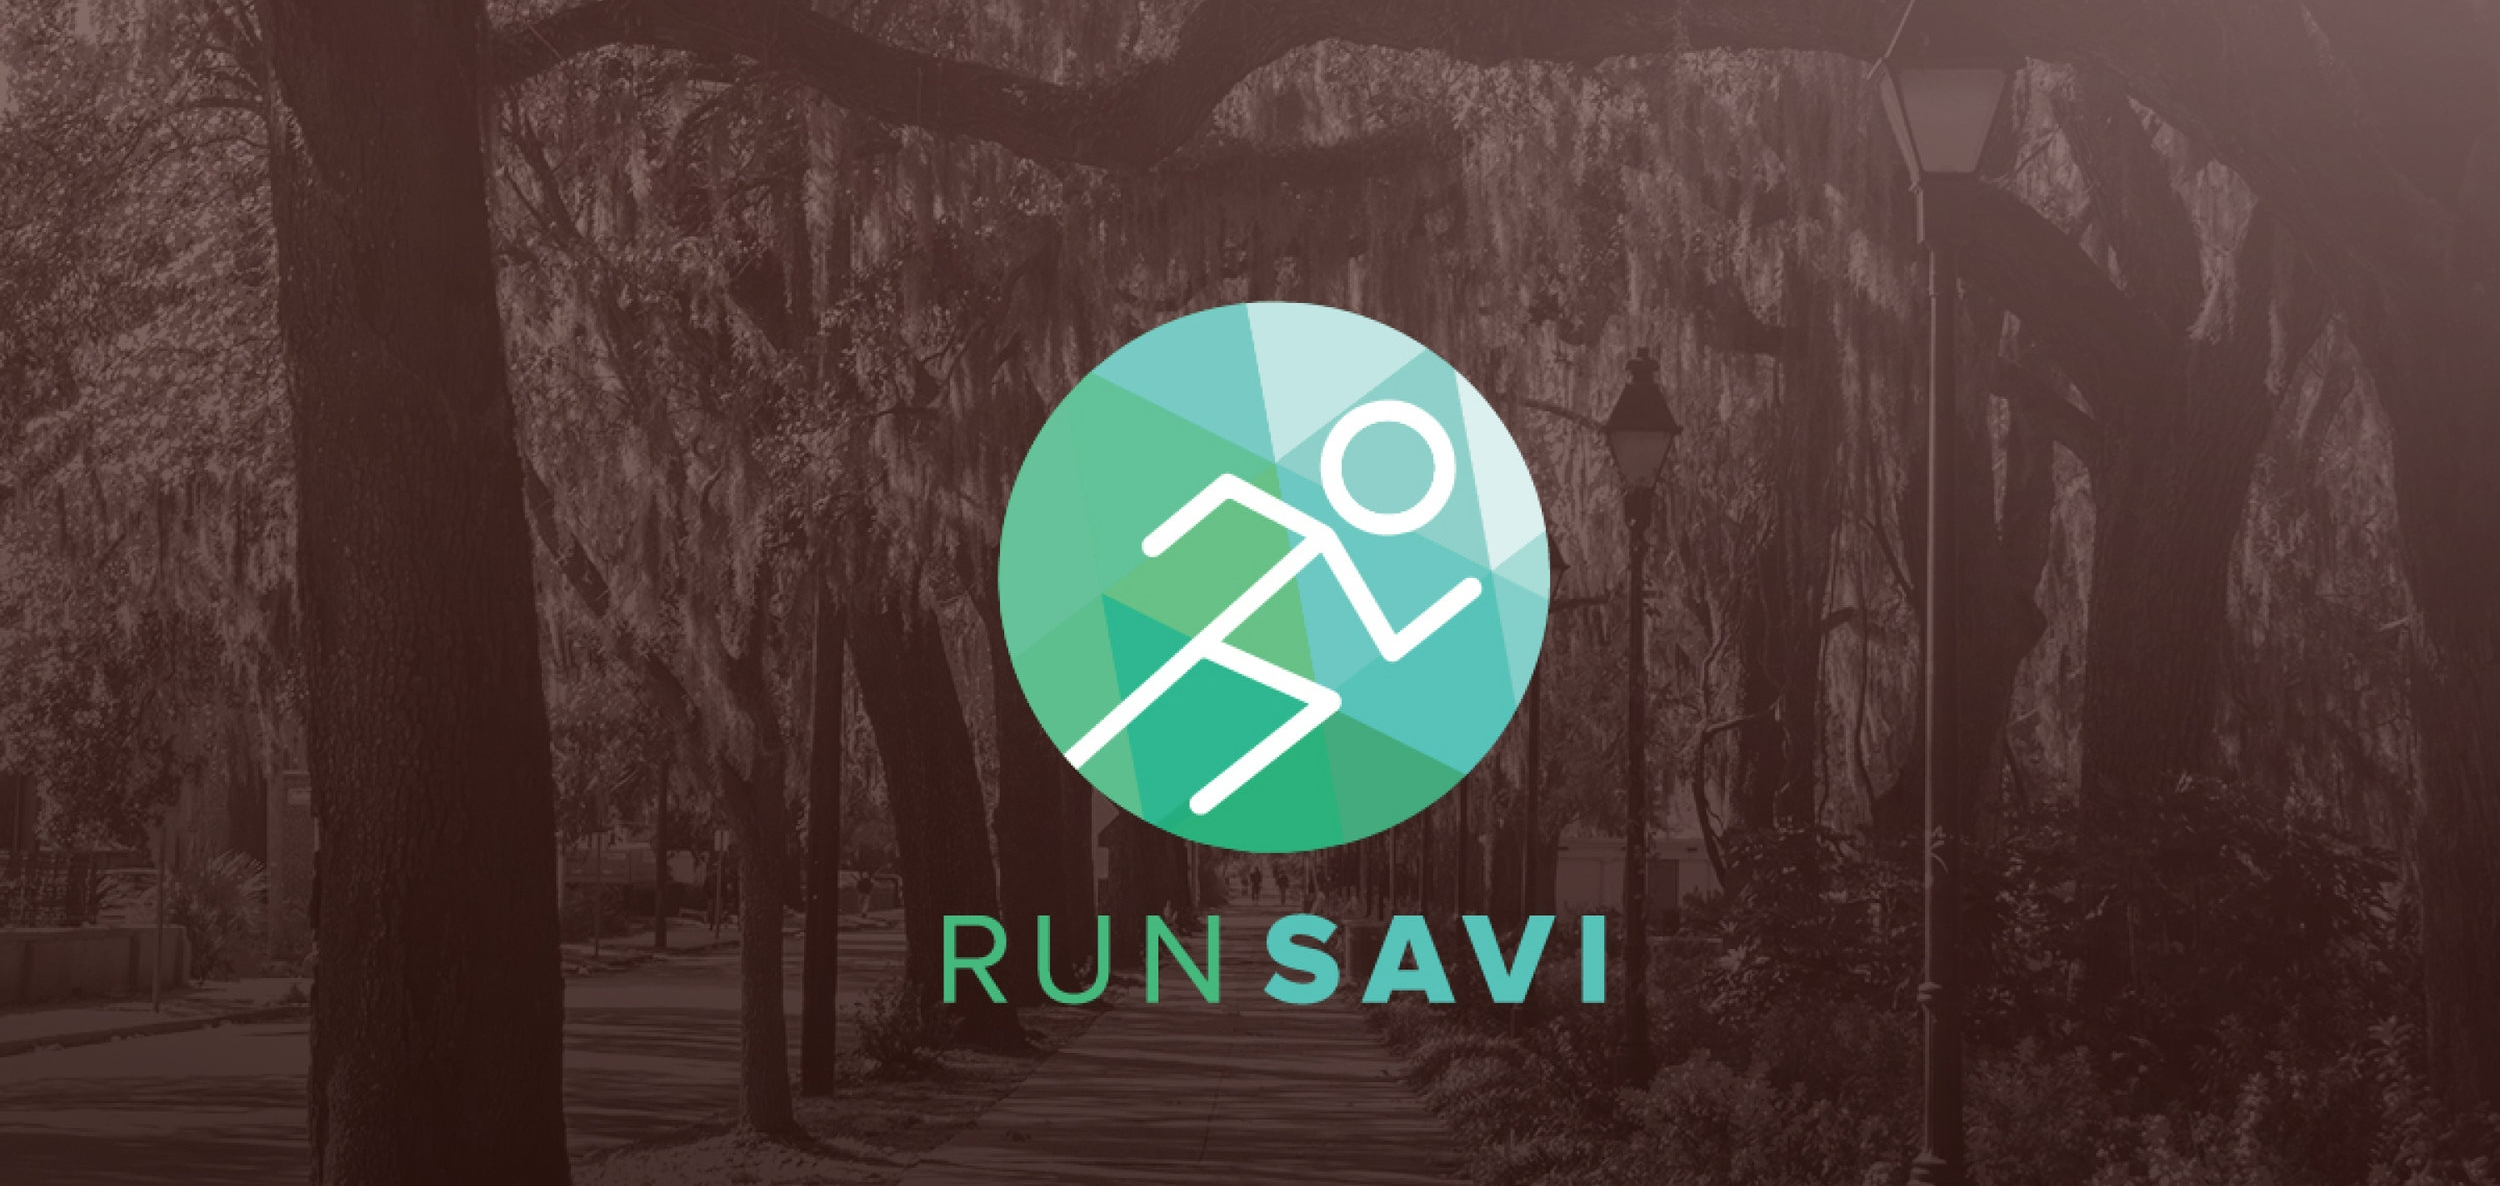 RUNSAVI_website jpgs_march2017.jpg